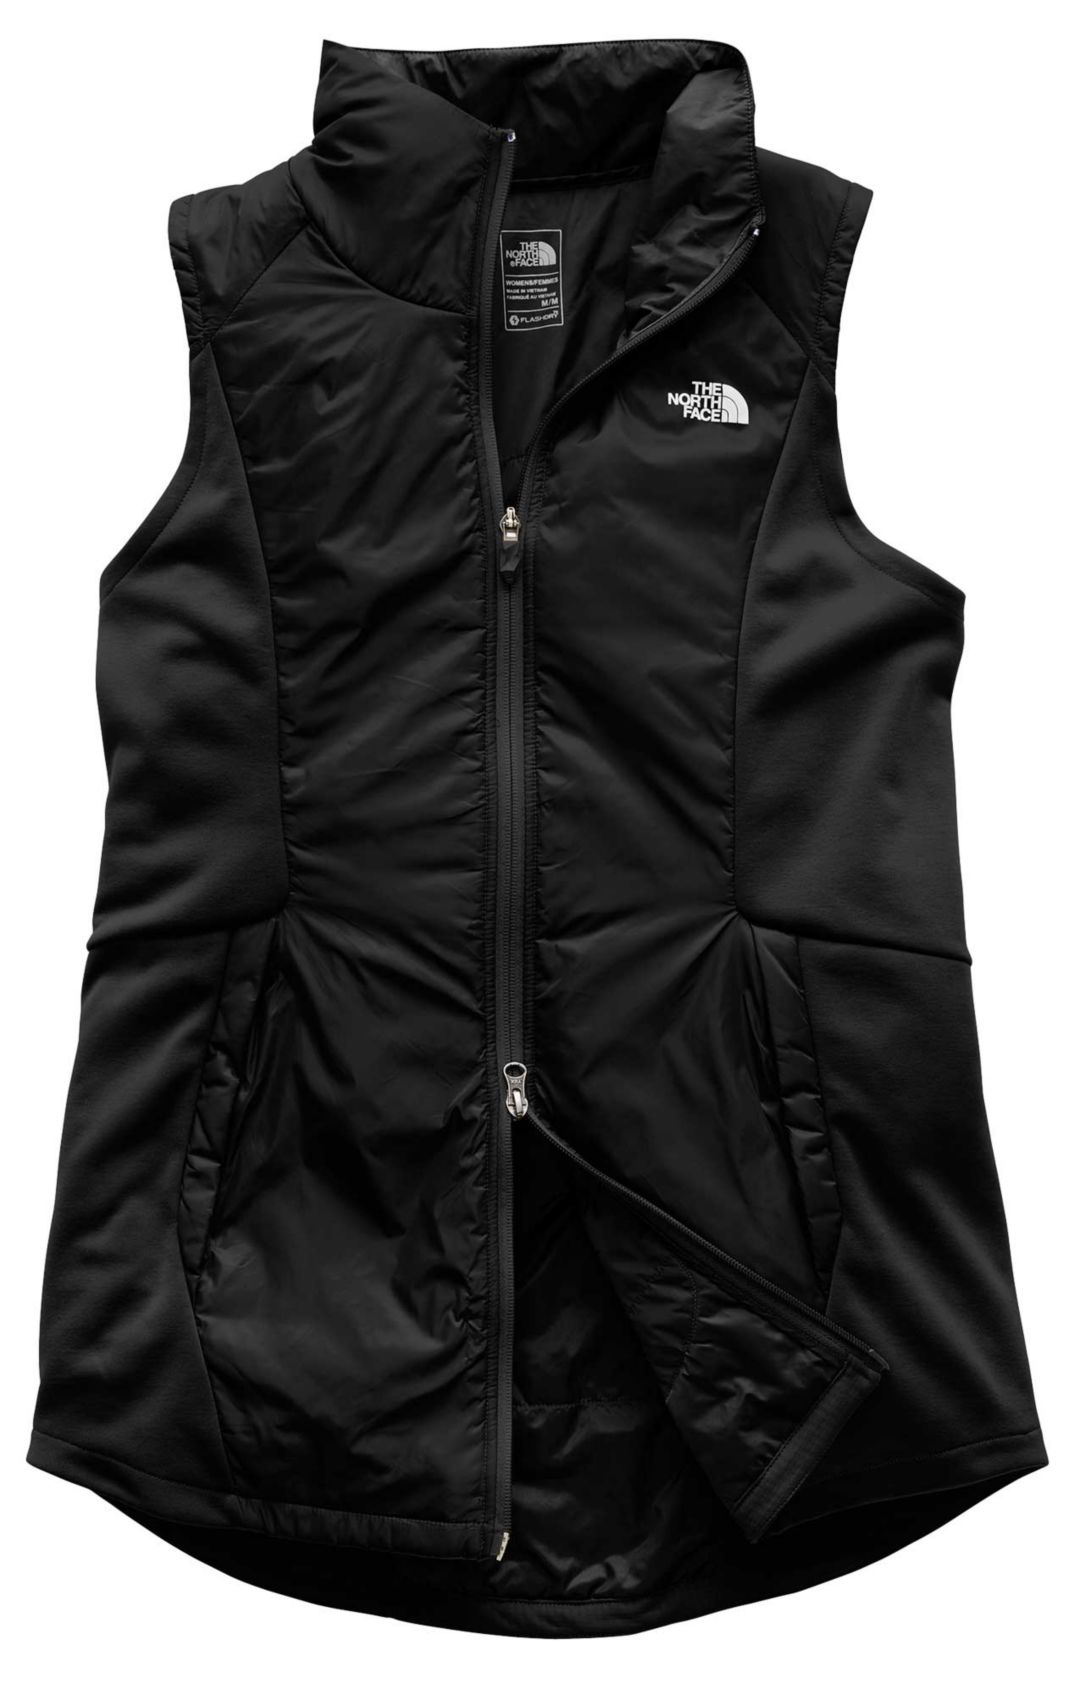 fc6f6810f The North Face Women's Motivation Vest